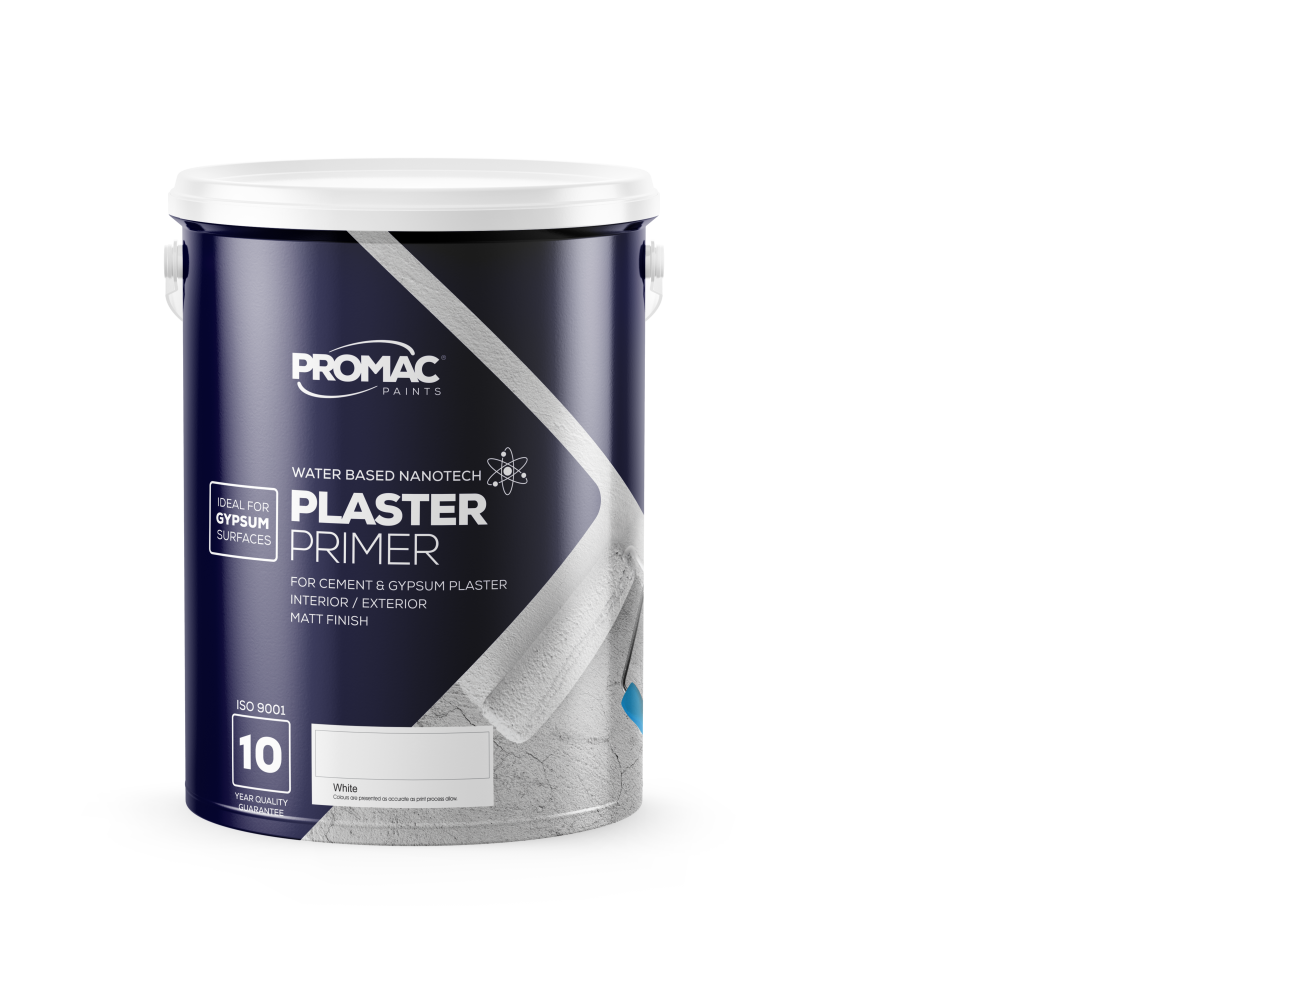 PLASTERpRIMER - WATER BASED NANOTECHPromac Plaster Primer Nanotech is a water based plaster primer which penetrates the surface and ensures optimum adhesion of top coats to the surface, while providing protection against alkali and efflorescence.